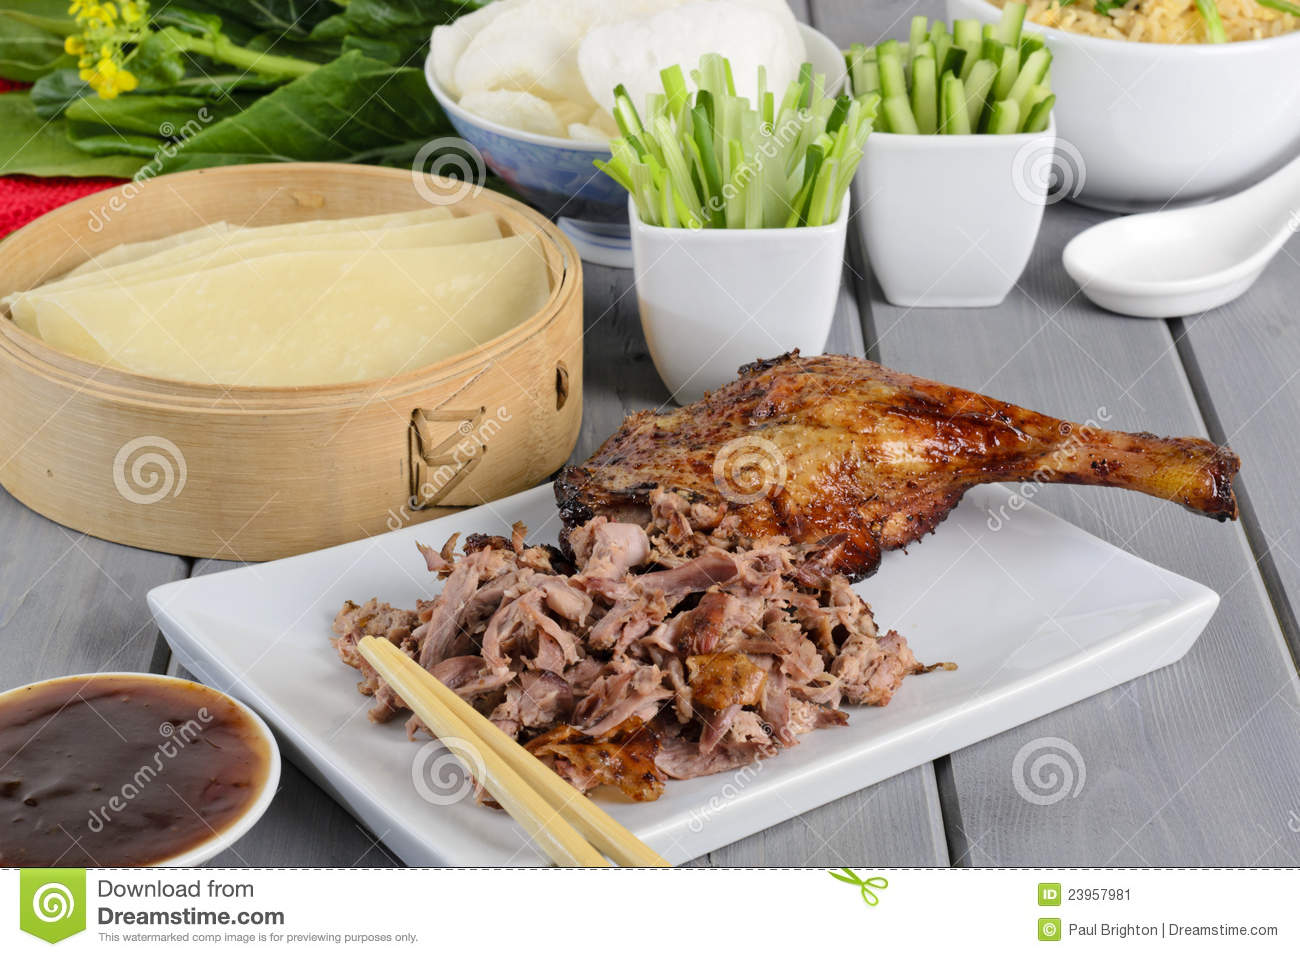 how to write peking duck in chiense